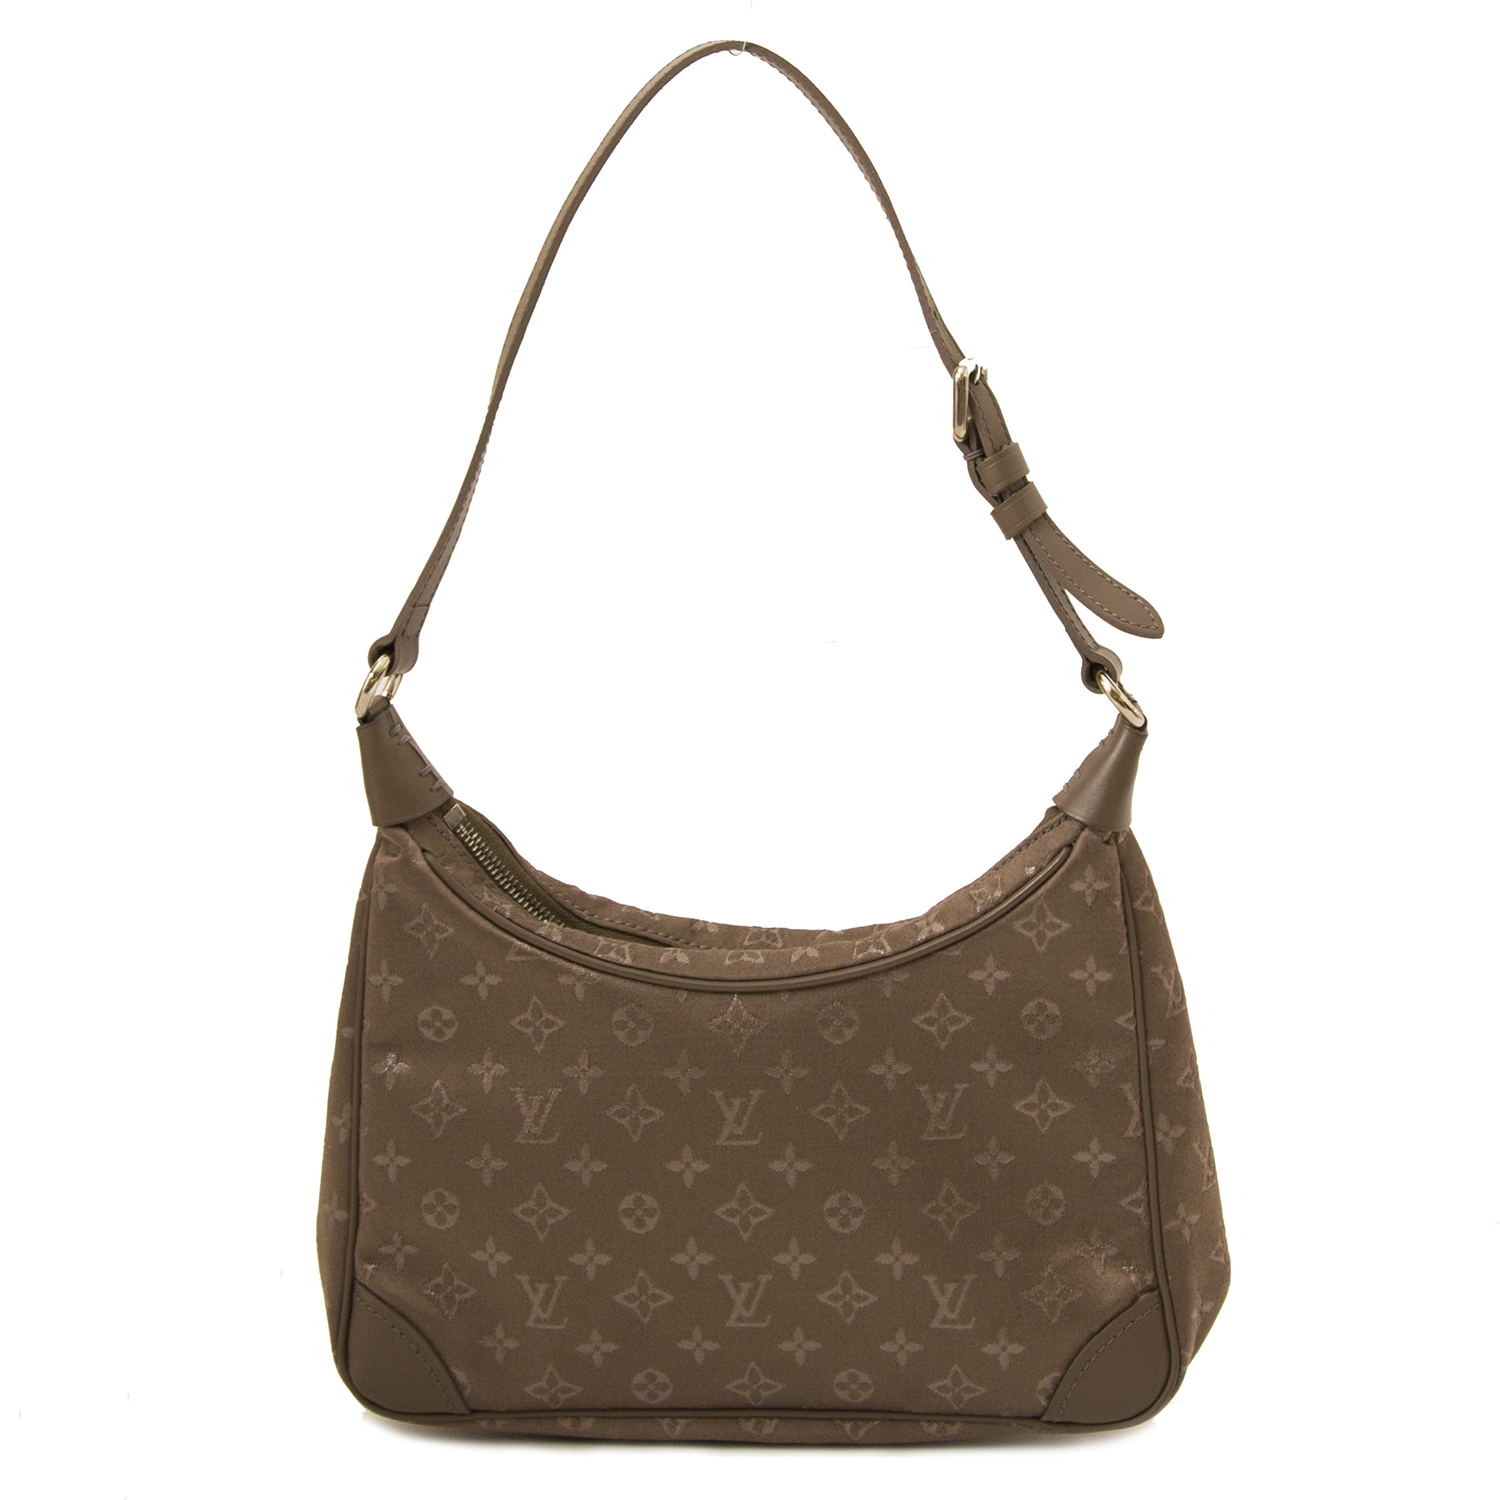 Buy authentic Louis Vuitton bags at Labellov vintage fashion webshop